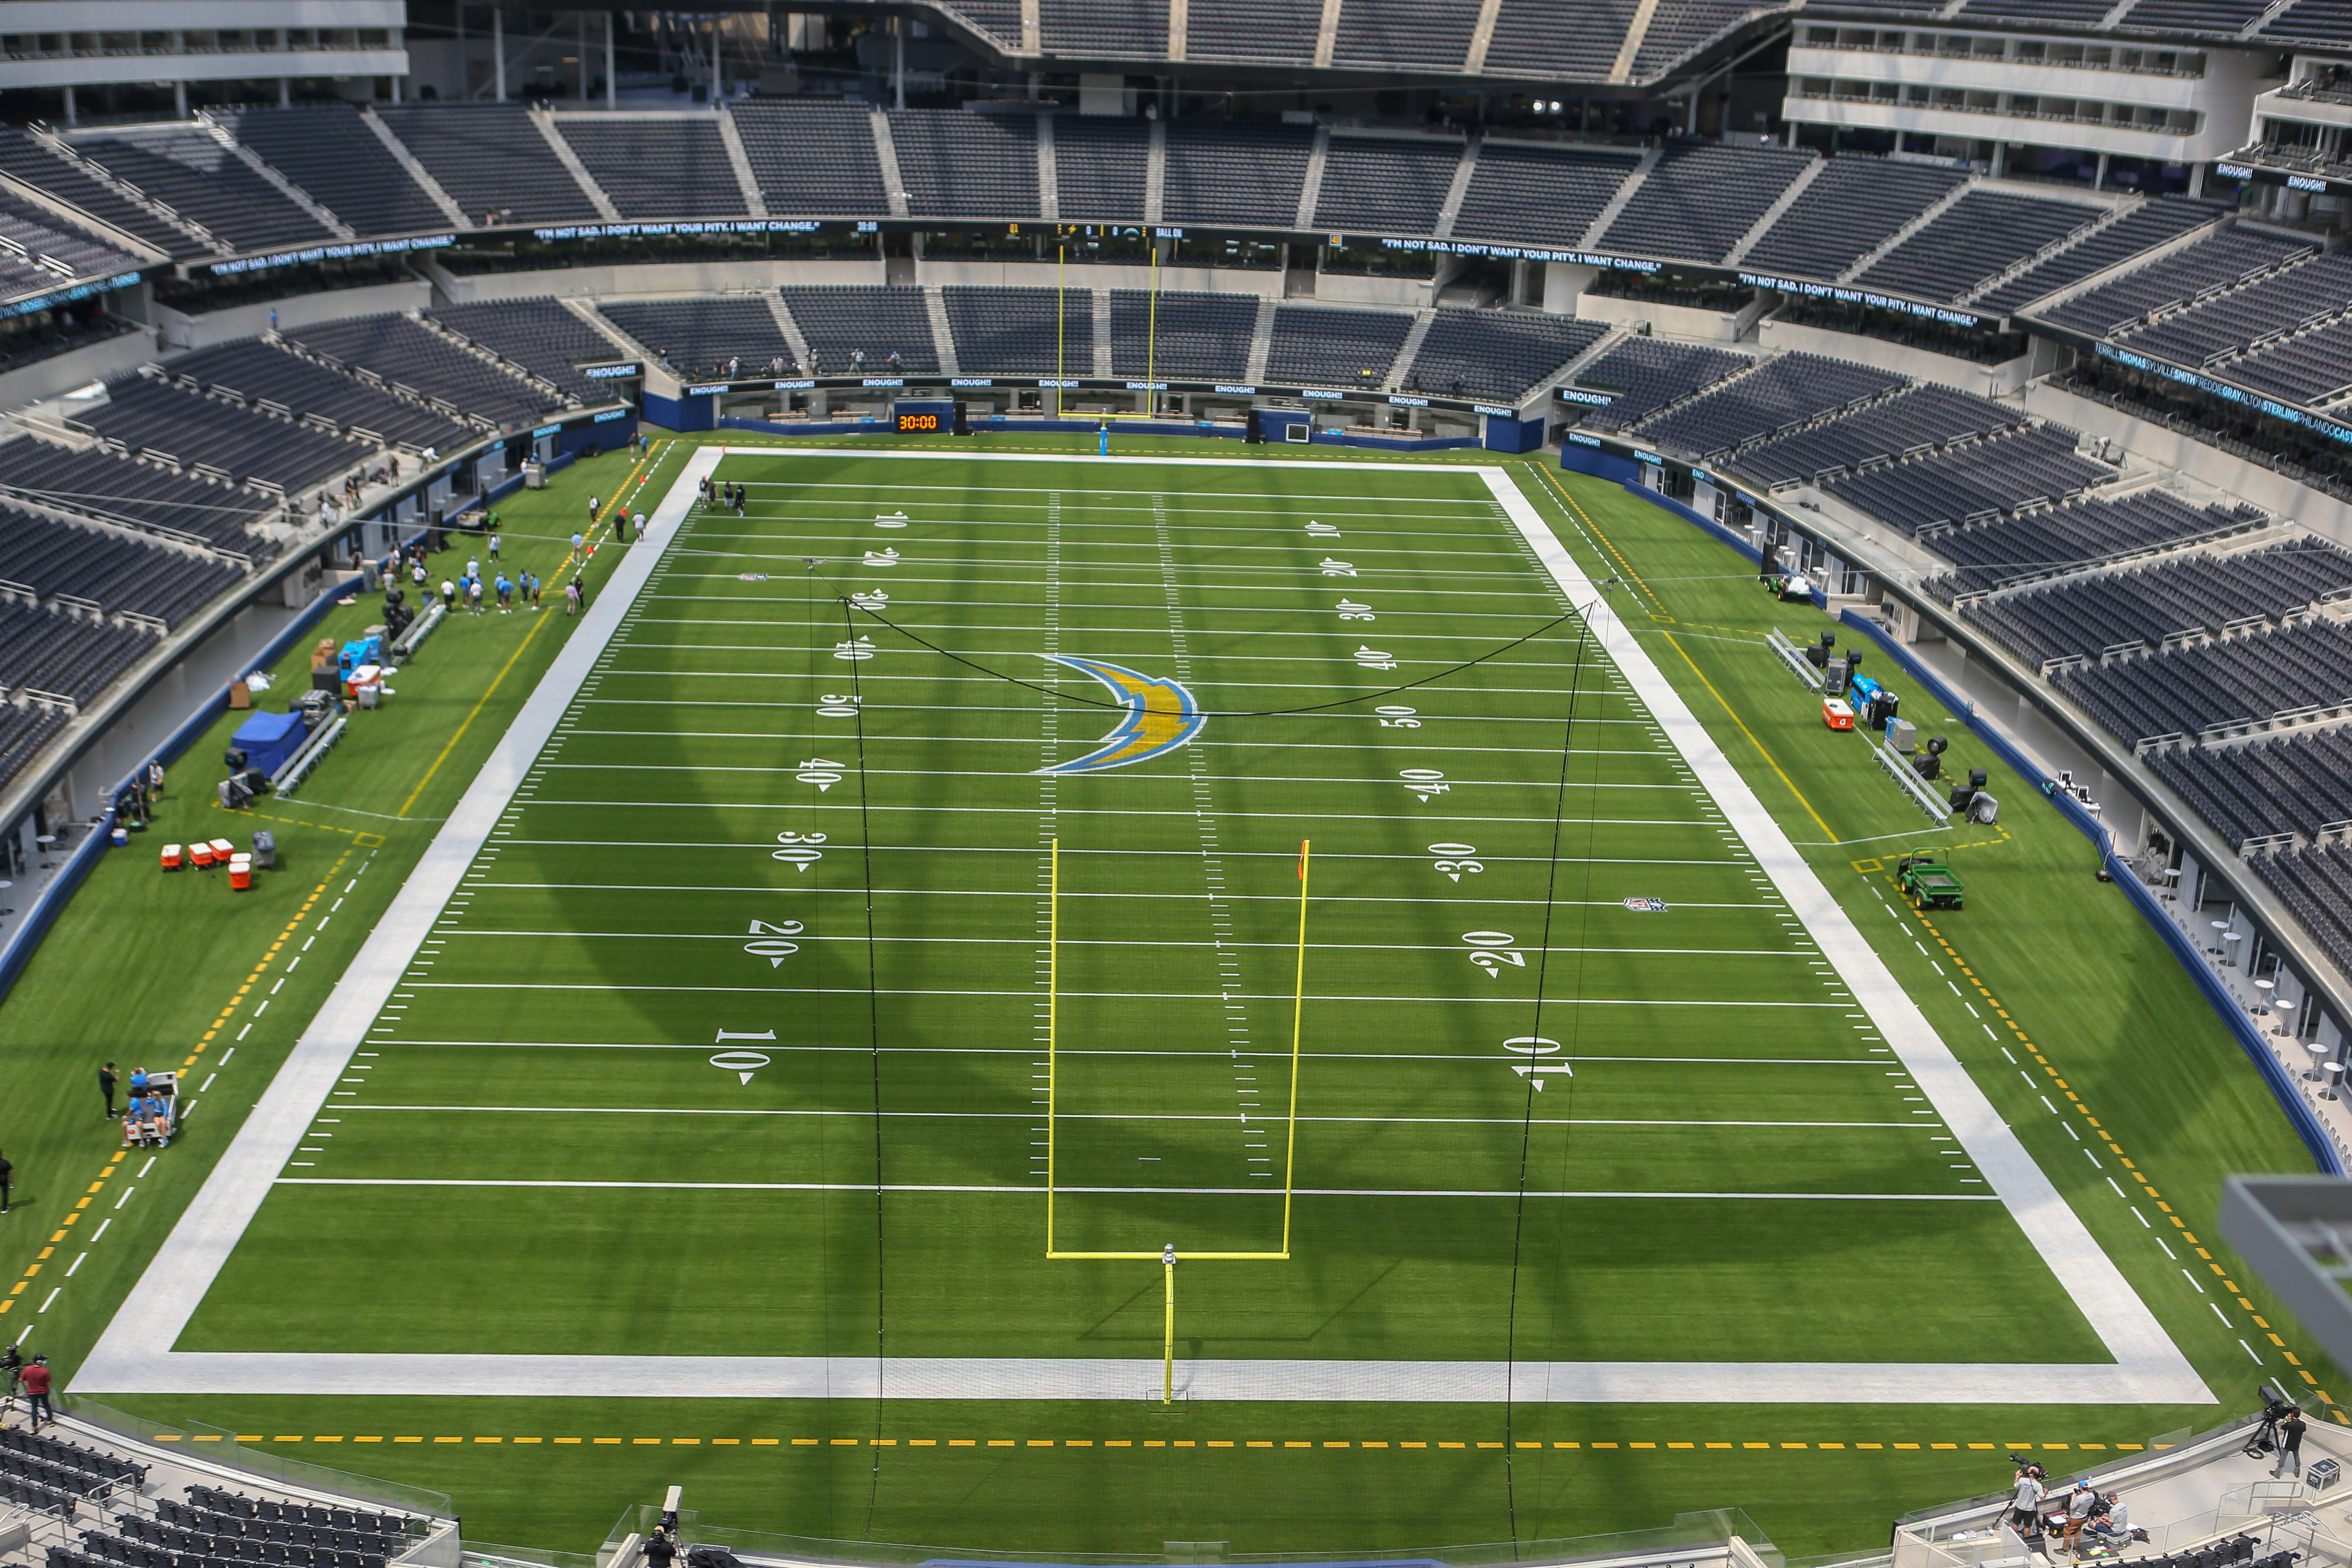 NFL: AUG 27 Chargers Scrimmage